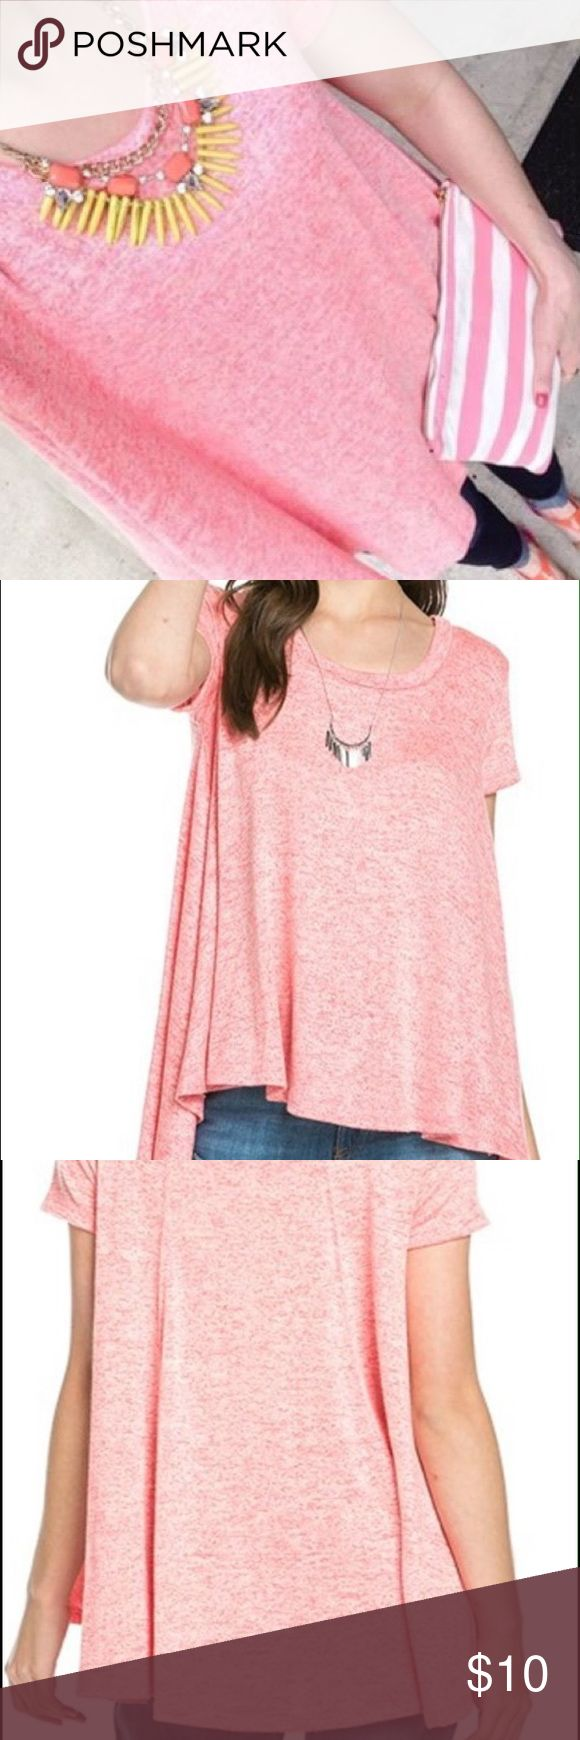 """NWOT Women's High Low Pink T-Shirt Boutique item. Super cute bright pink t-shirt with scoop neck. Shorter in front and longer in back. 77% rayon, 21% polyester, and 2% spandex. Hand wash cold gentle cycle and line dry. Approximate measurements: Medium - 21"""" armpit to armpit when laid flat; 25"""" long in the front; 30.5"""" long in back. Large - 22"""" armpit to armpit when laid flat; 25"""" long in the front; 31.5"""" in back. Recommend ordering normal size. From a smoke-free, pet-free building. Tops Tees…"""